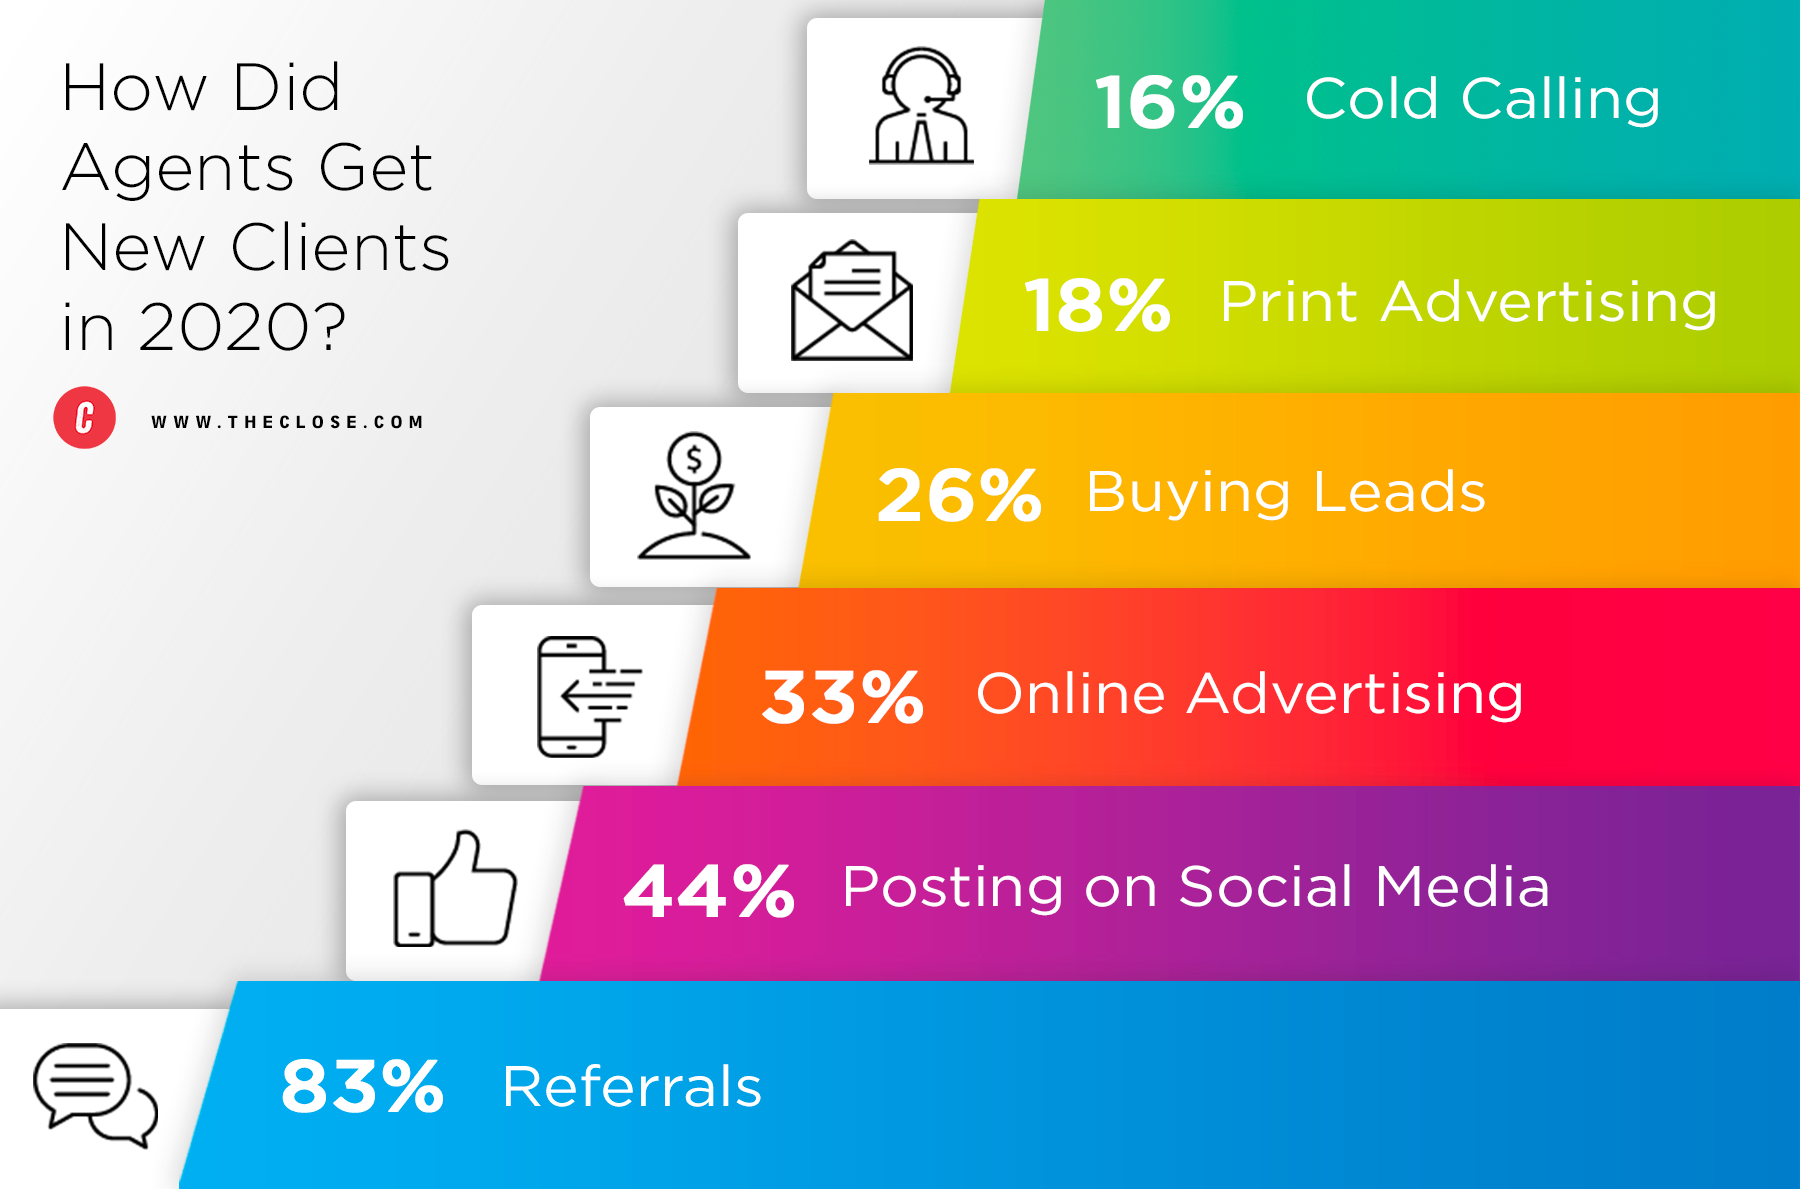 Newclients2020infographic 1 zqbofwq